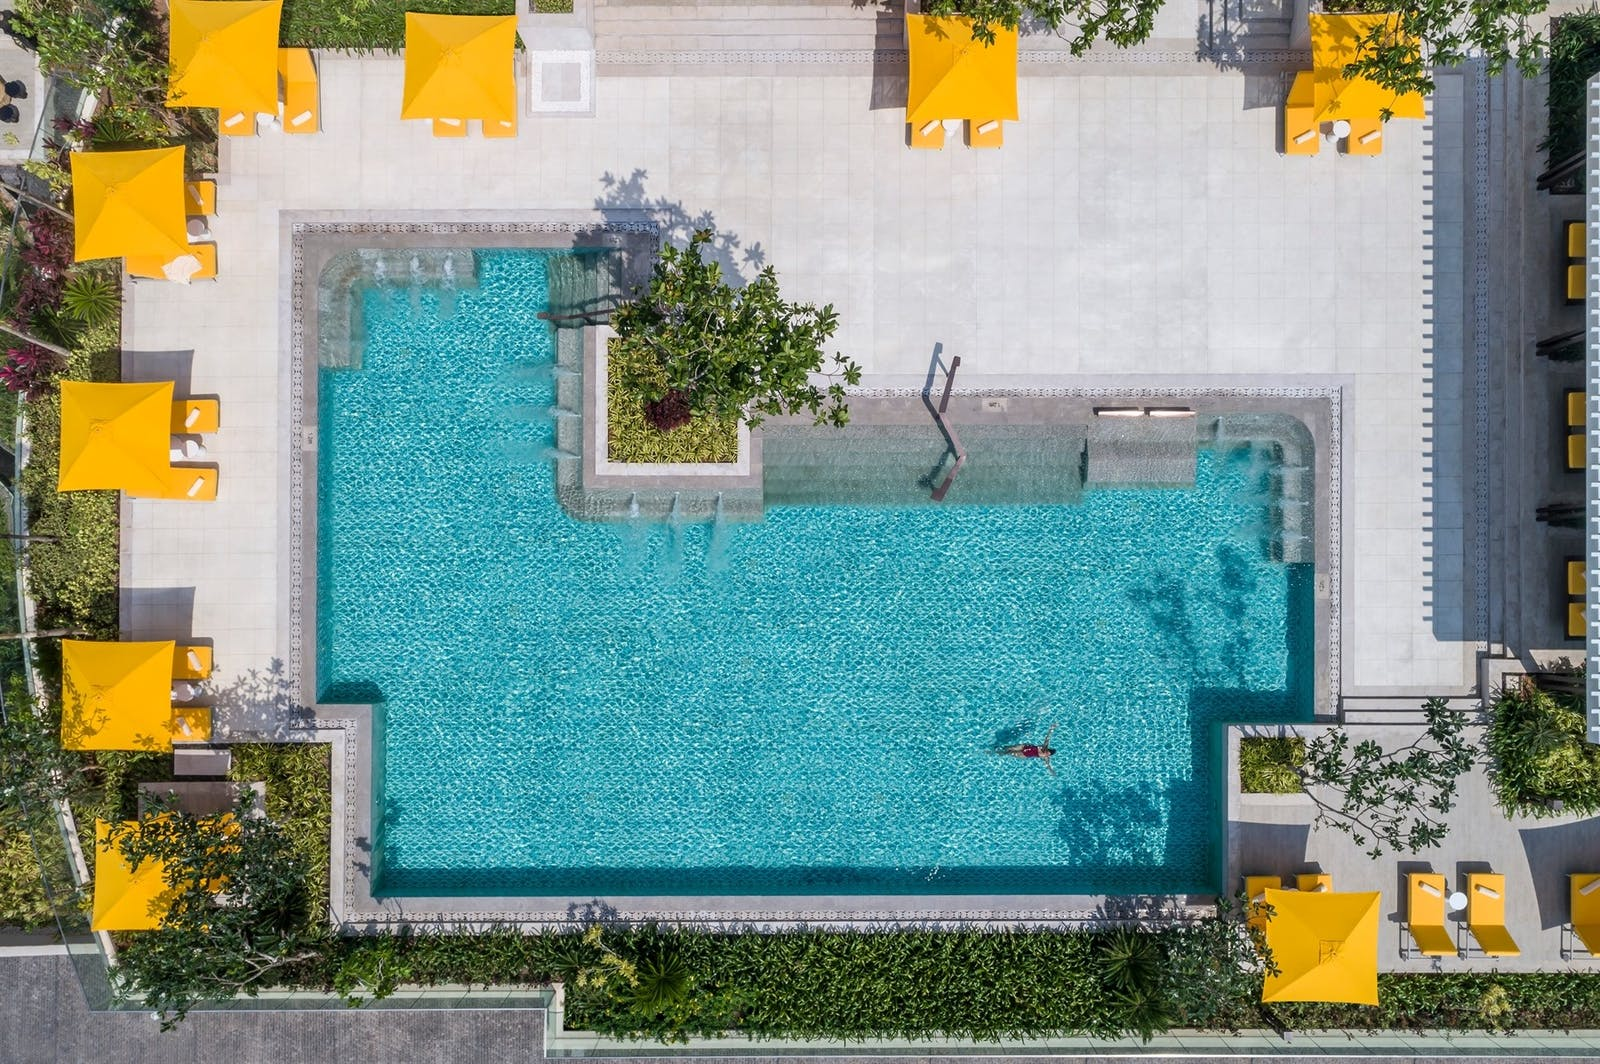 Aerial View of Pool Area, Shangri-la Hotel, Colombo, Sri Lanka